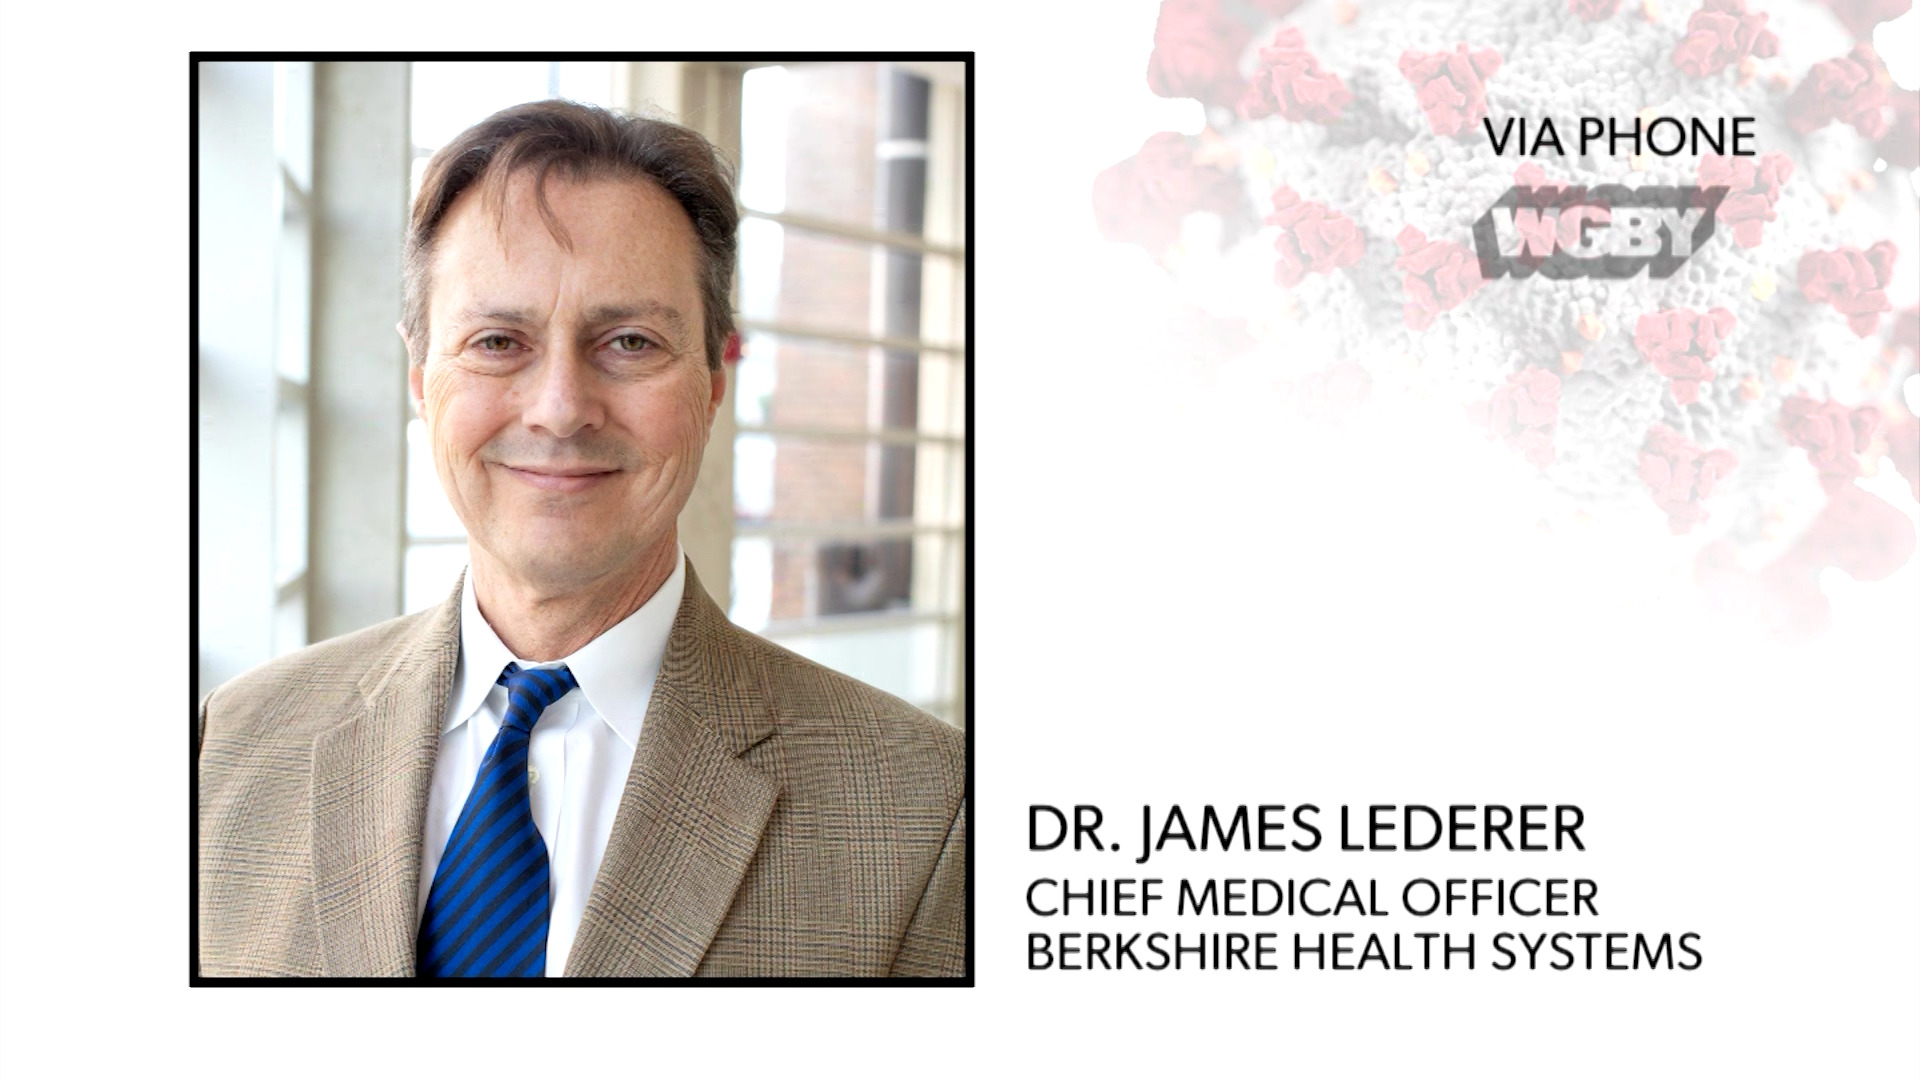 WATCH: Berkshire Health Systems' Dr. James Lederer provides an update on the declining number of COVID-19 cases in the region.